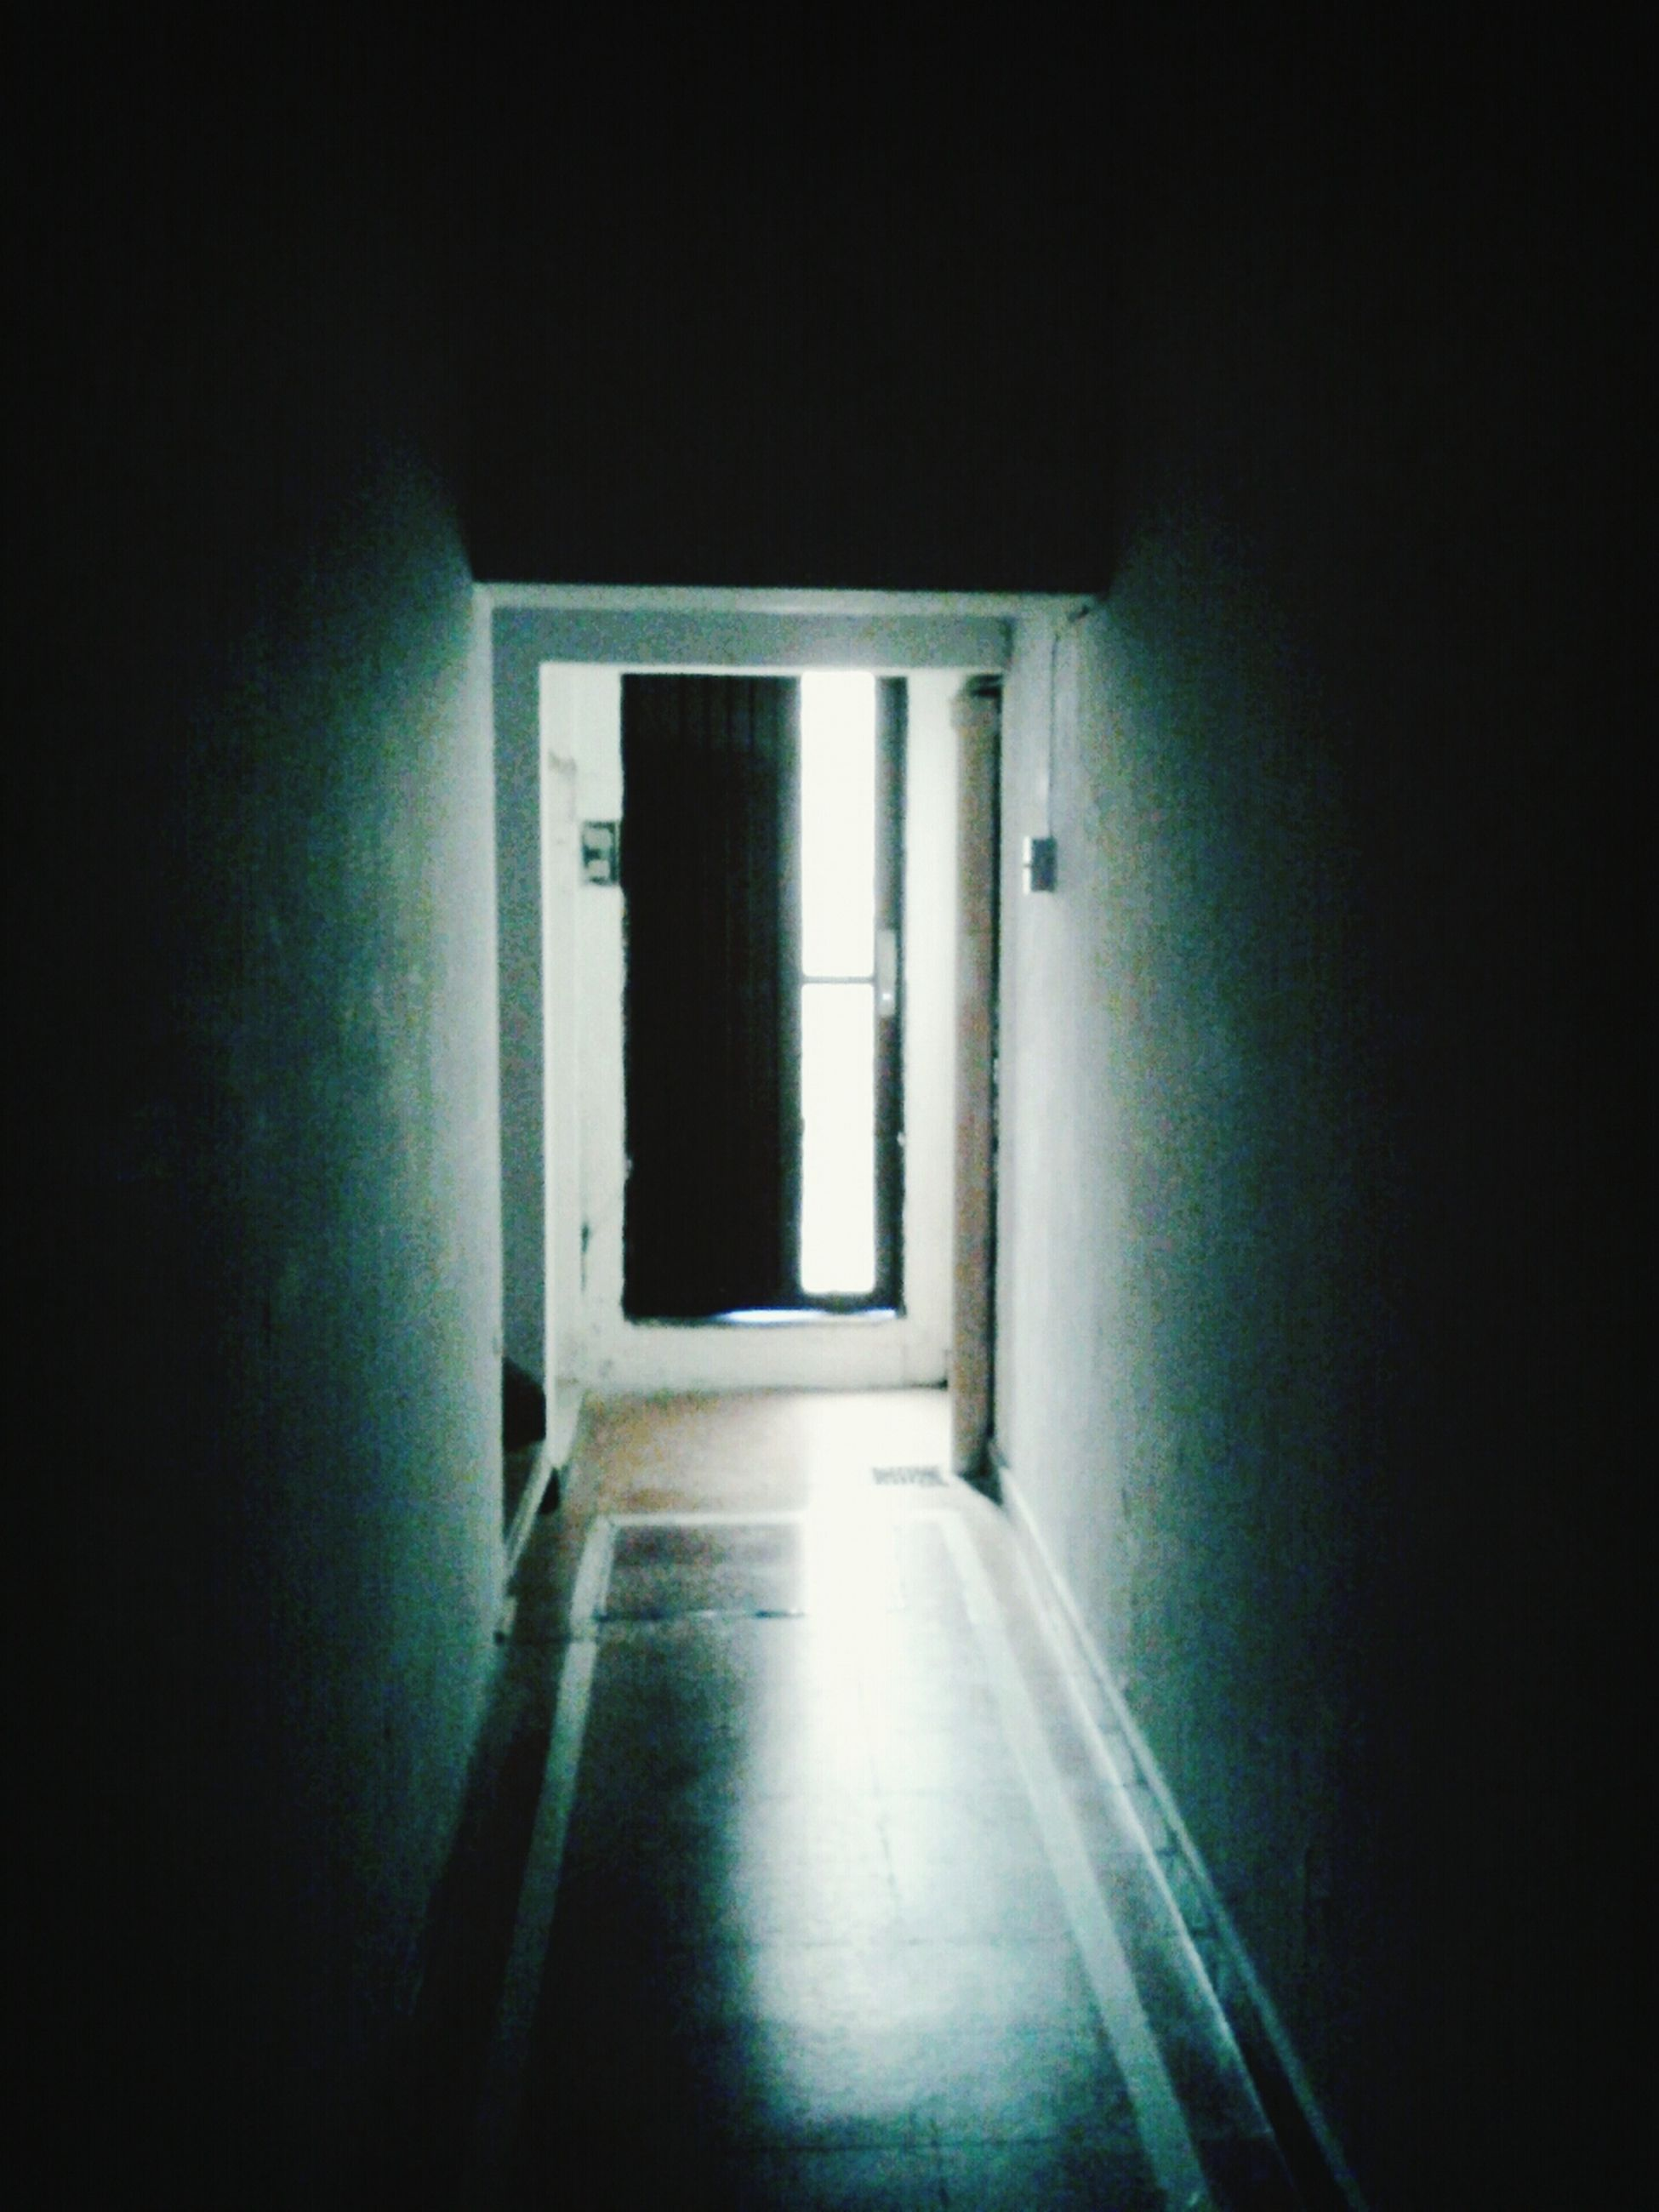 indoors, architecture, door, built structure, empty, the way forward, wall - building feature, wall, window, corridor, illuminated, absence, entrance, doorway, no people, dark, closed, narrow, house, building